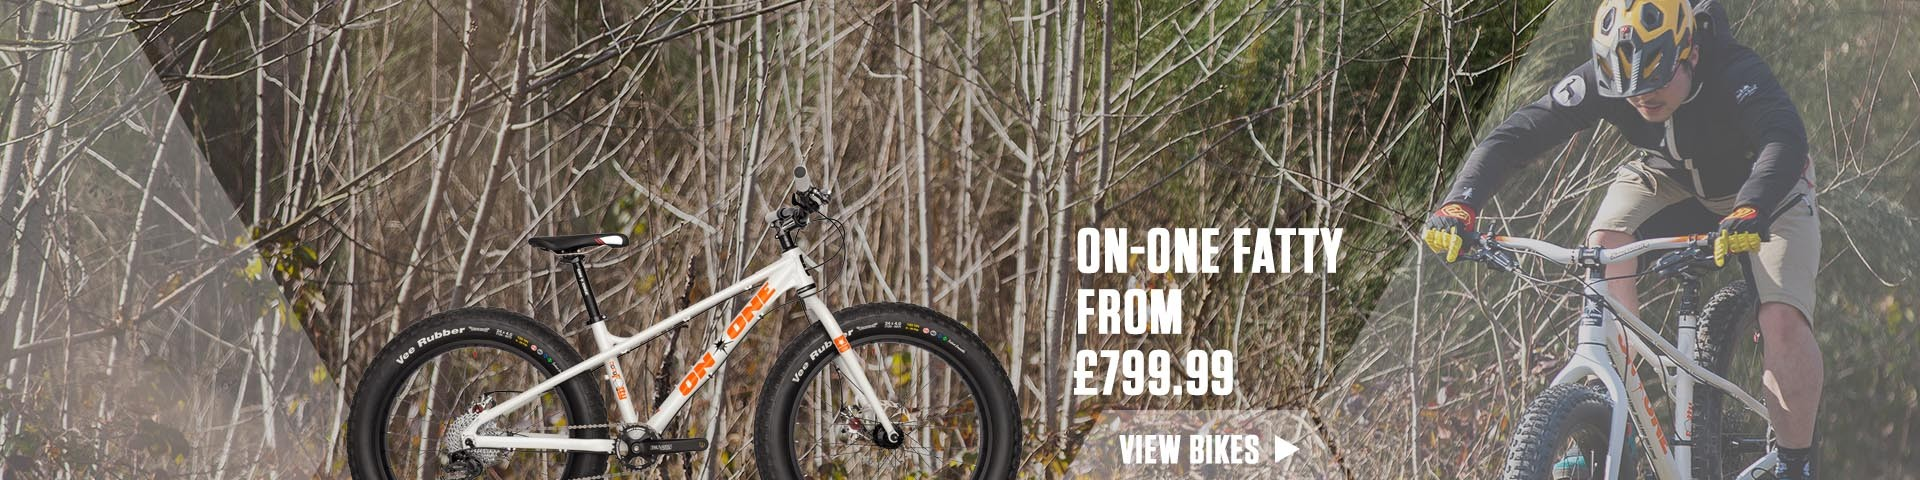 Fat Bikes from 799.99